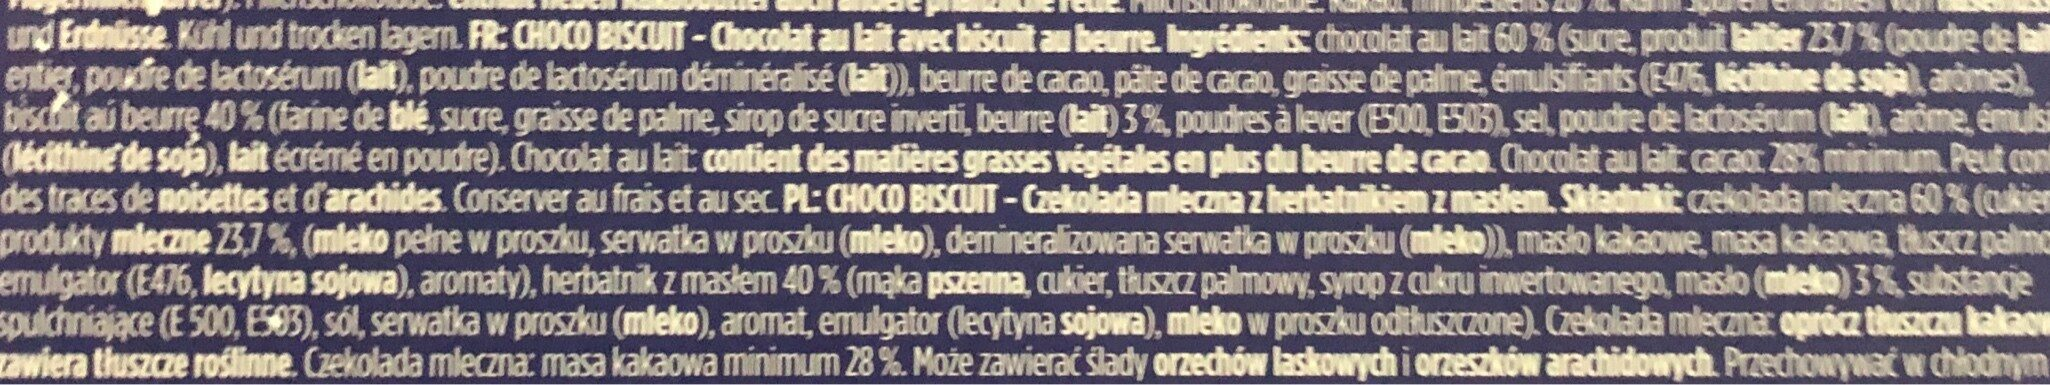 Choco biscuits - Ingredientes - fr